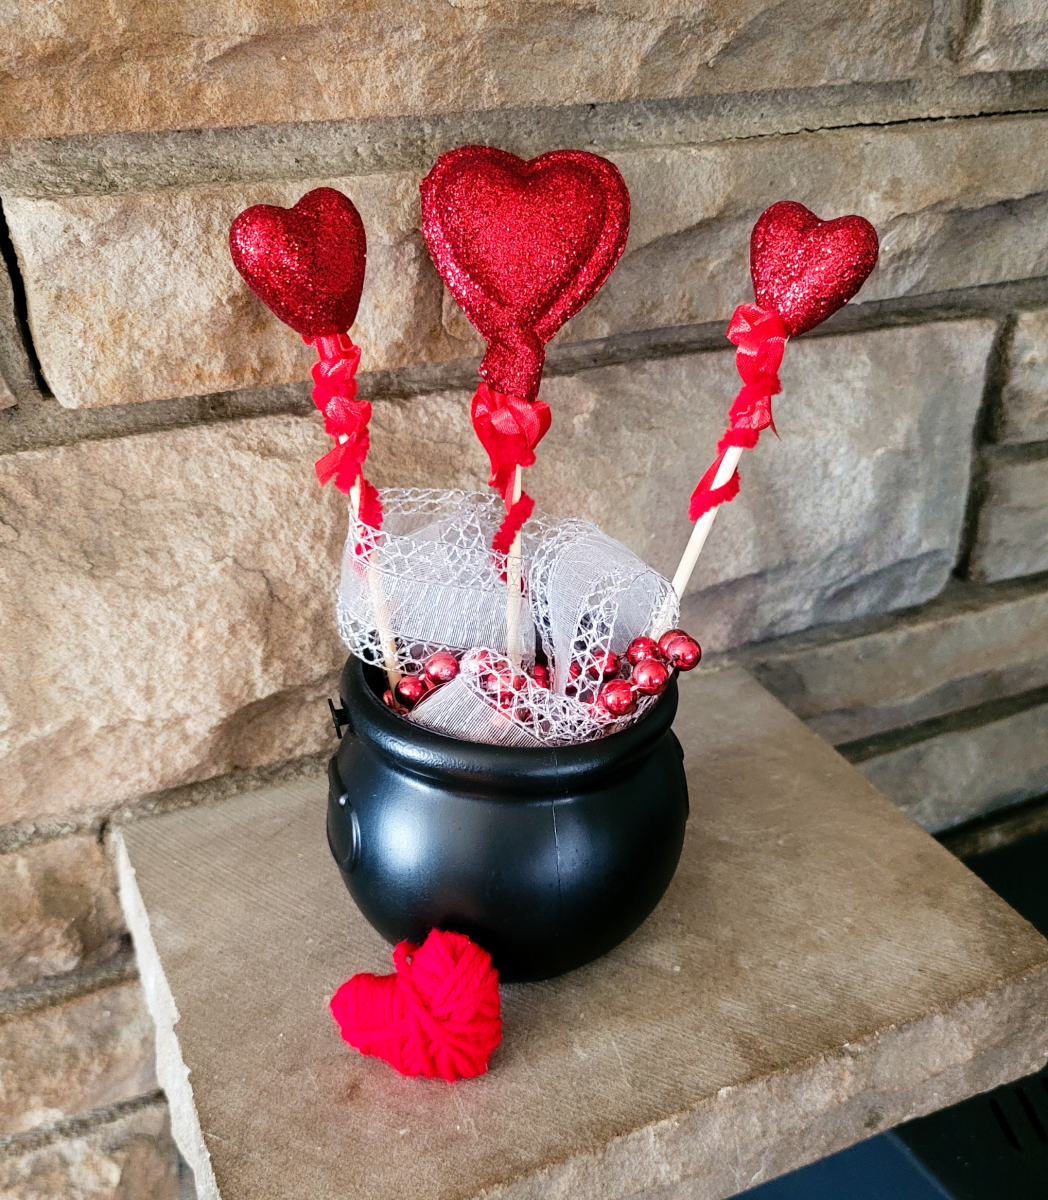 This love potion display is a cheap and fun piece of flair you can create easily as part of your Valentine's Day decor.